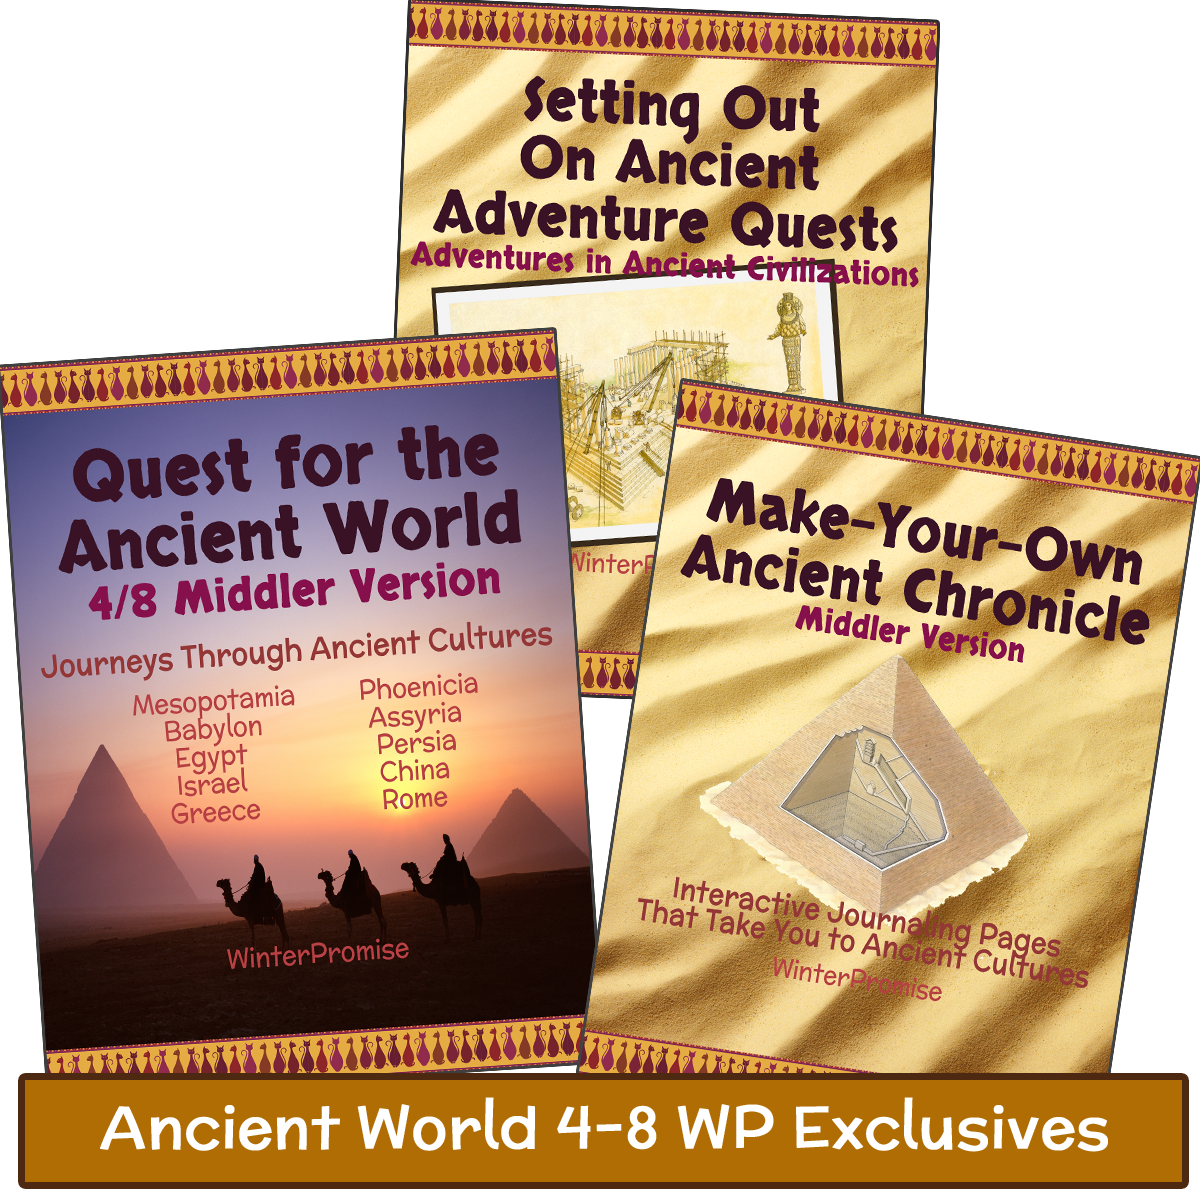 """Choose Your Ancient 4/8 """"Heart & Soul"""" Resources The Exclusive Resources Around Which the Program is Built Click Into Each Resource to See What This Exclusives Print Bundle Includes: PRINT: Quest for the Ancient World 4/8 Guide PRINT: Setting Out On Ancient Adventure Quests PRINT: """"Make-Your-Own"""" Ancient Chronicle Notebook"""